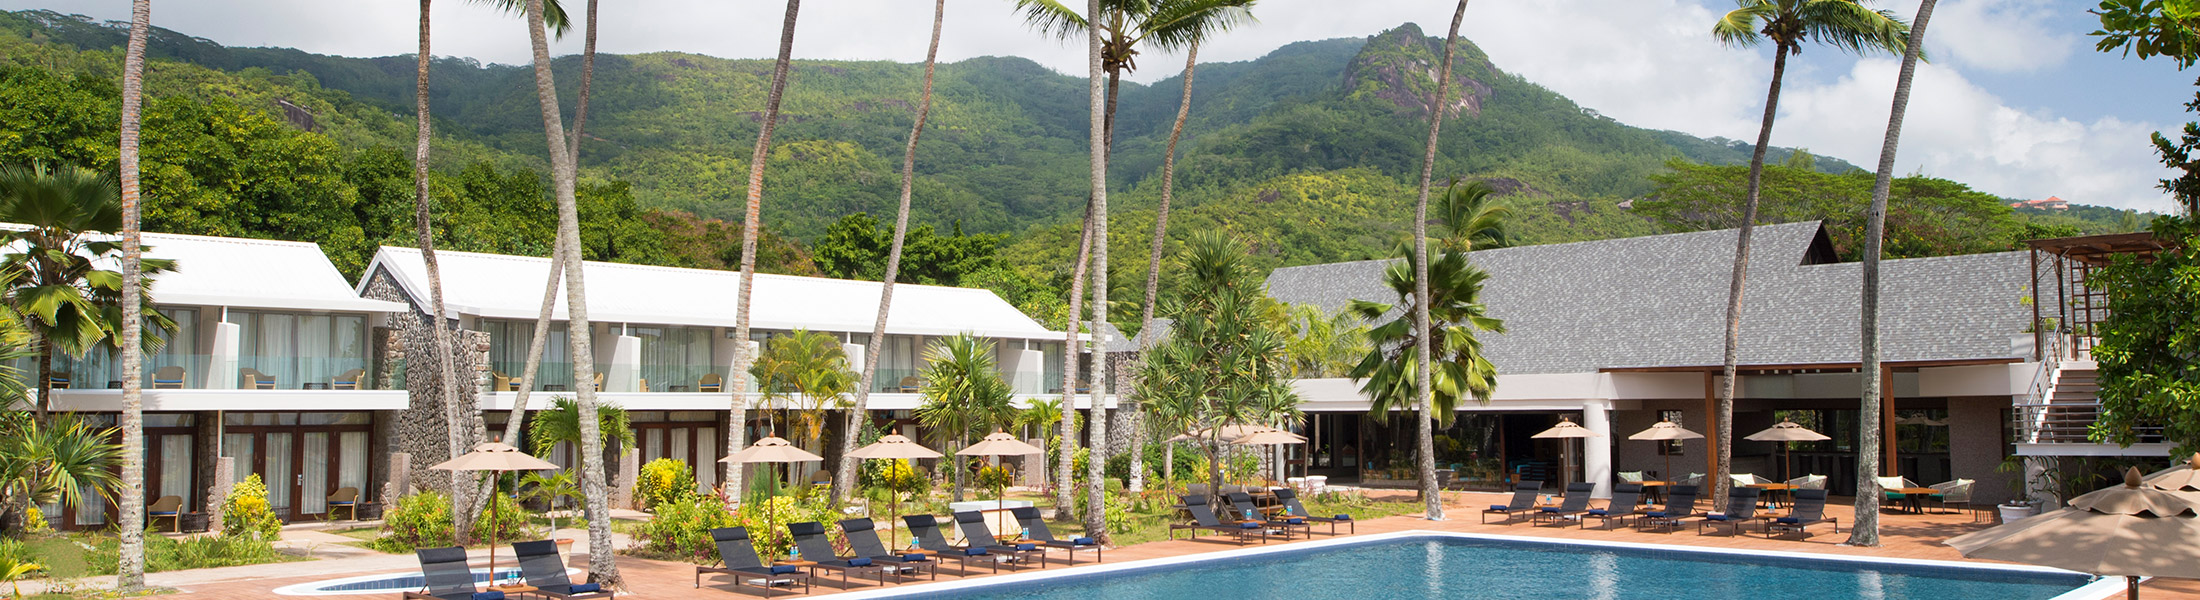 View of the resort pool and exterior at AVANI Barbarons Seychelles